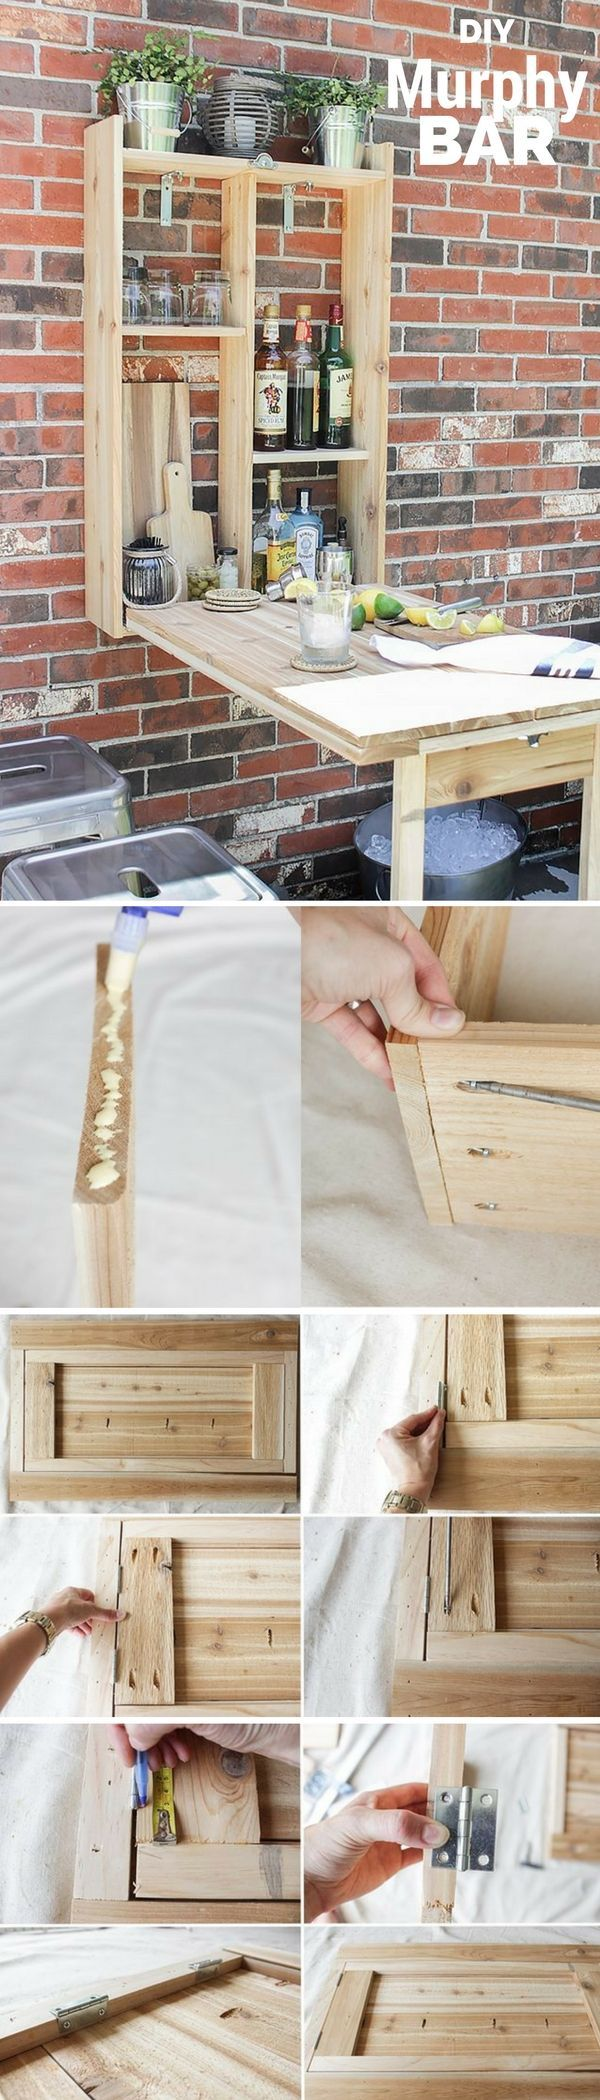 check out the tutorial diy murphy bar istandarddesign diy pinterest m bel garten und. Black Bedroom Furniture Sets. Home Design Ideas